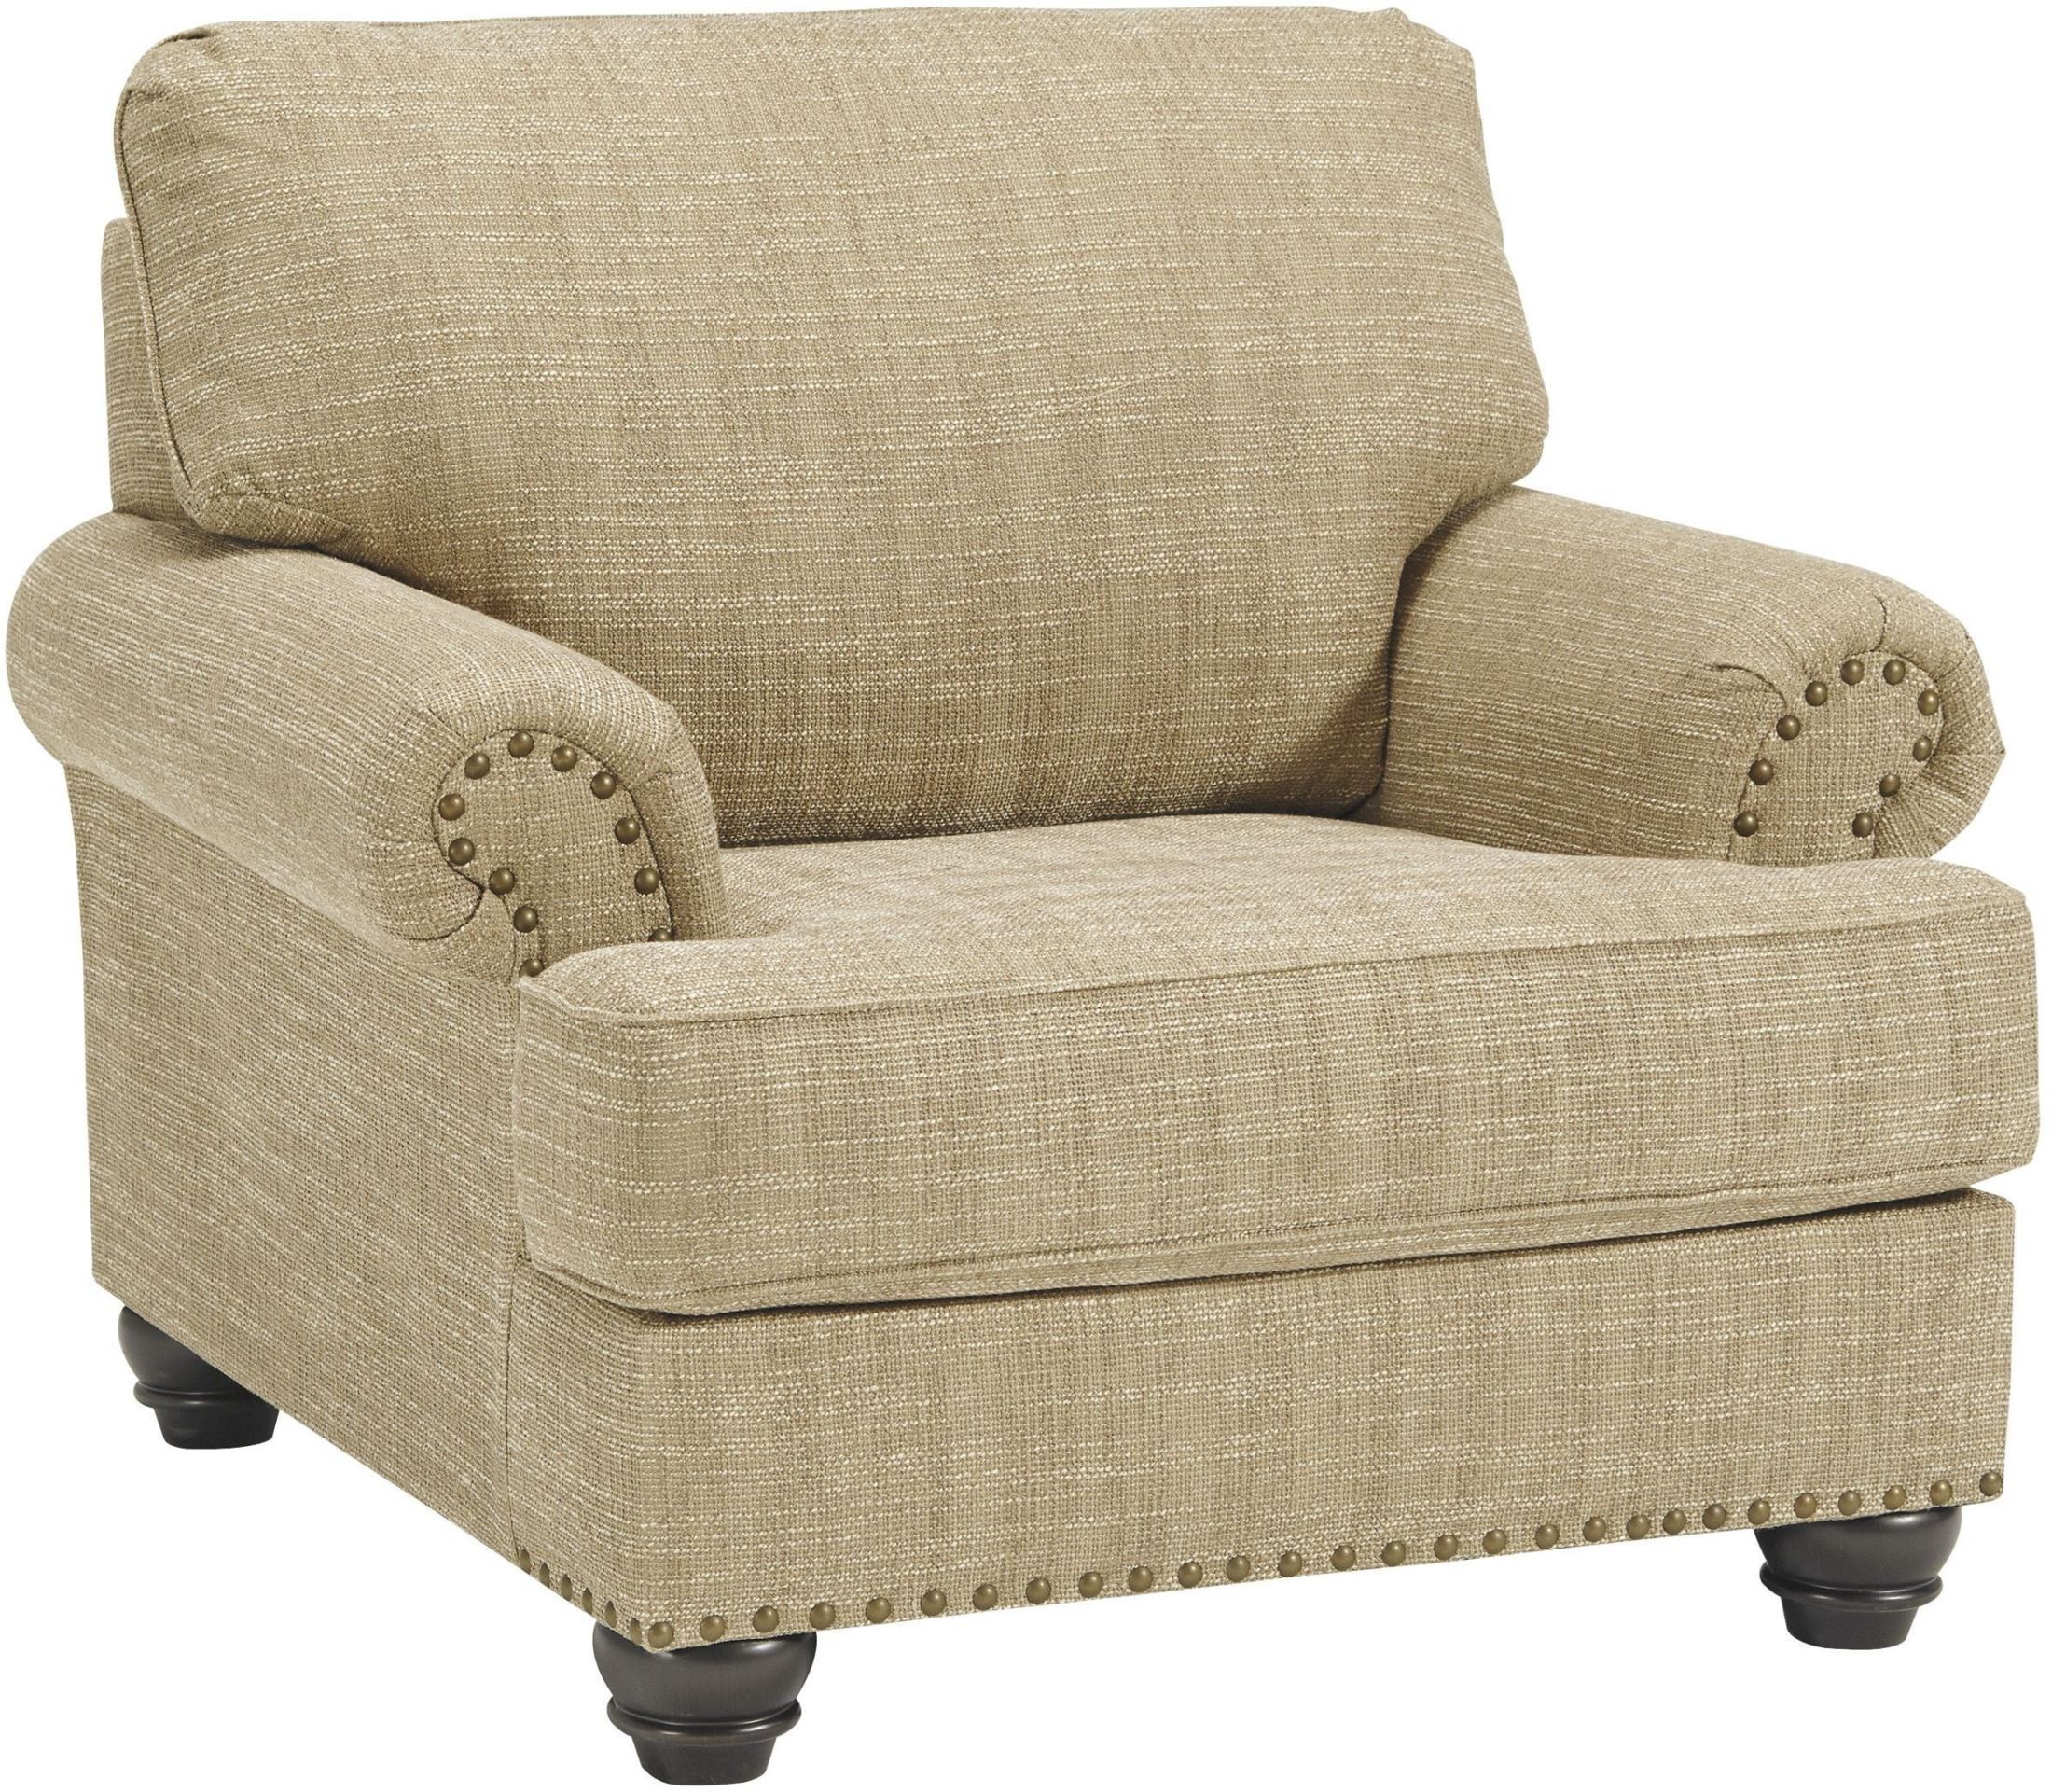 buy chair candoro oatmeal chair from coleman furniture 11806 | 11806 20 sw